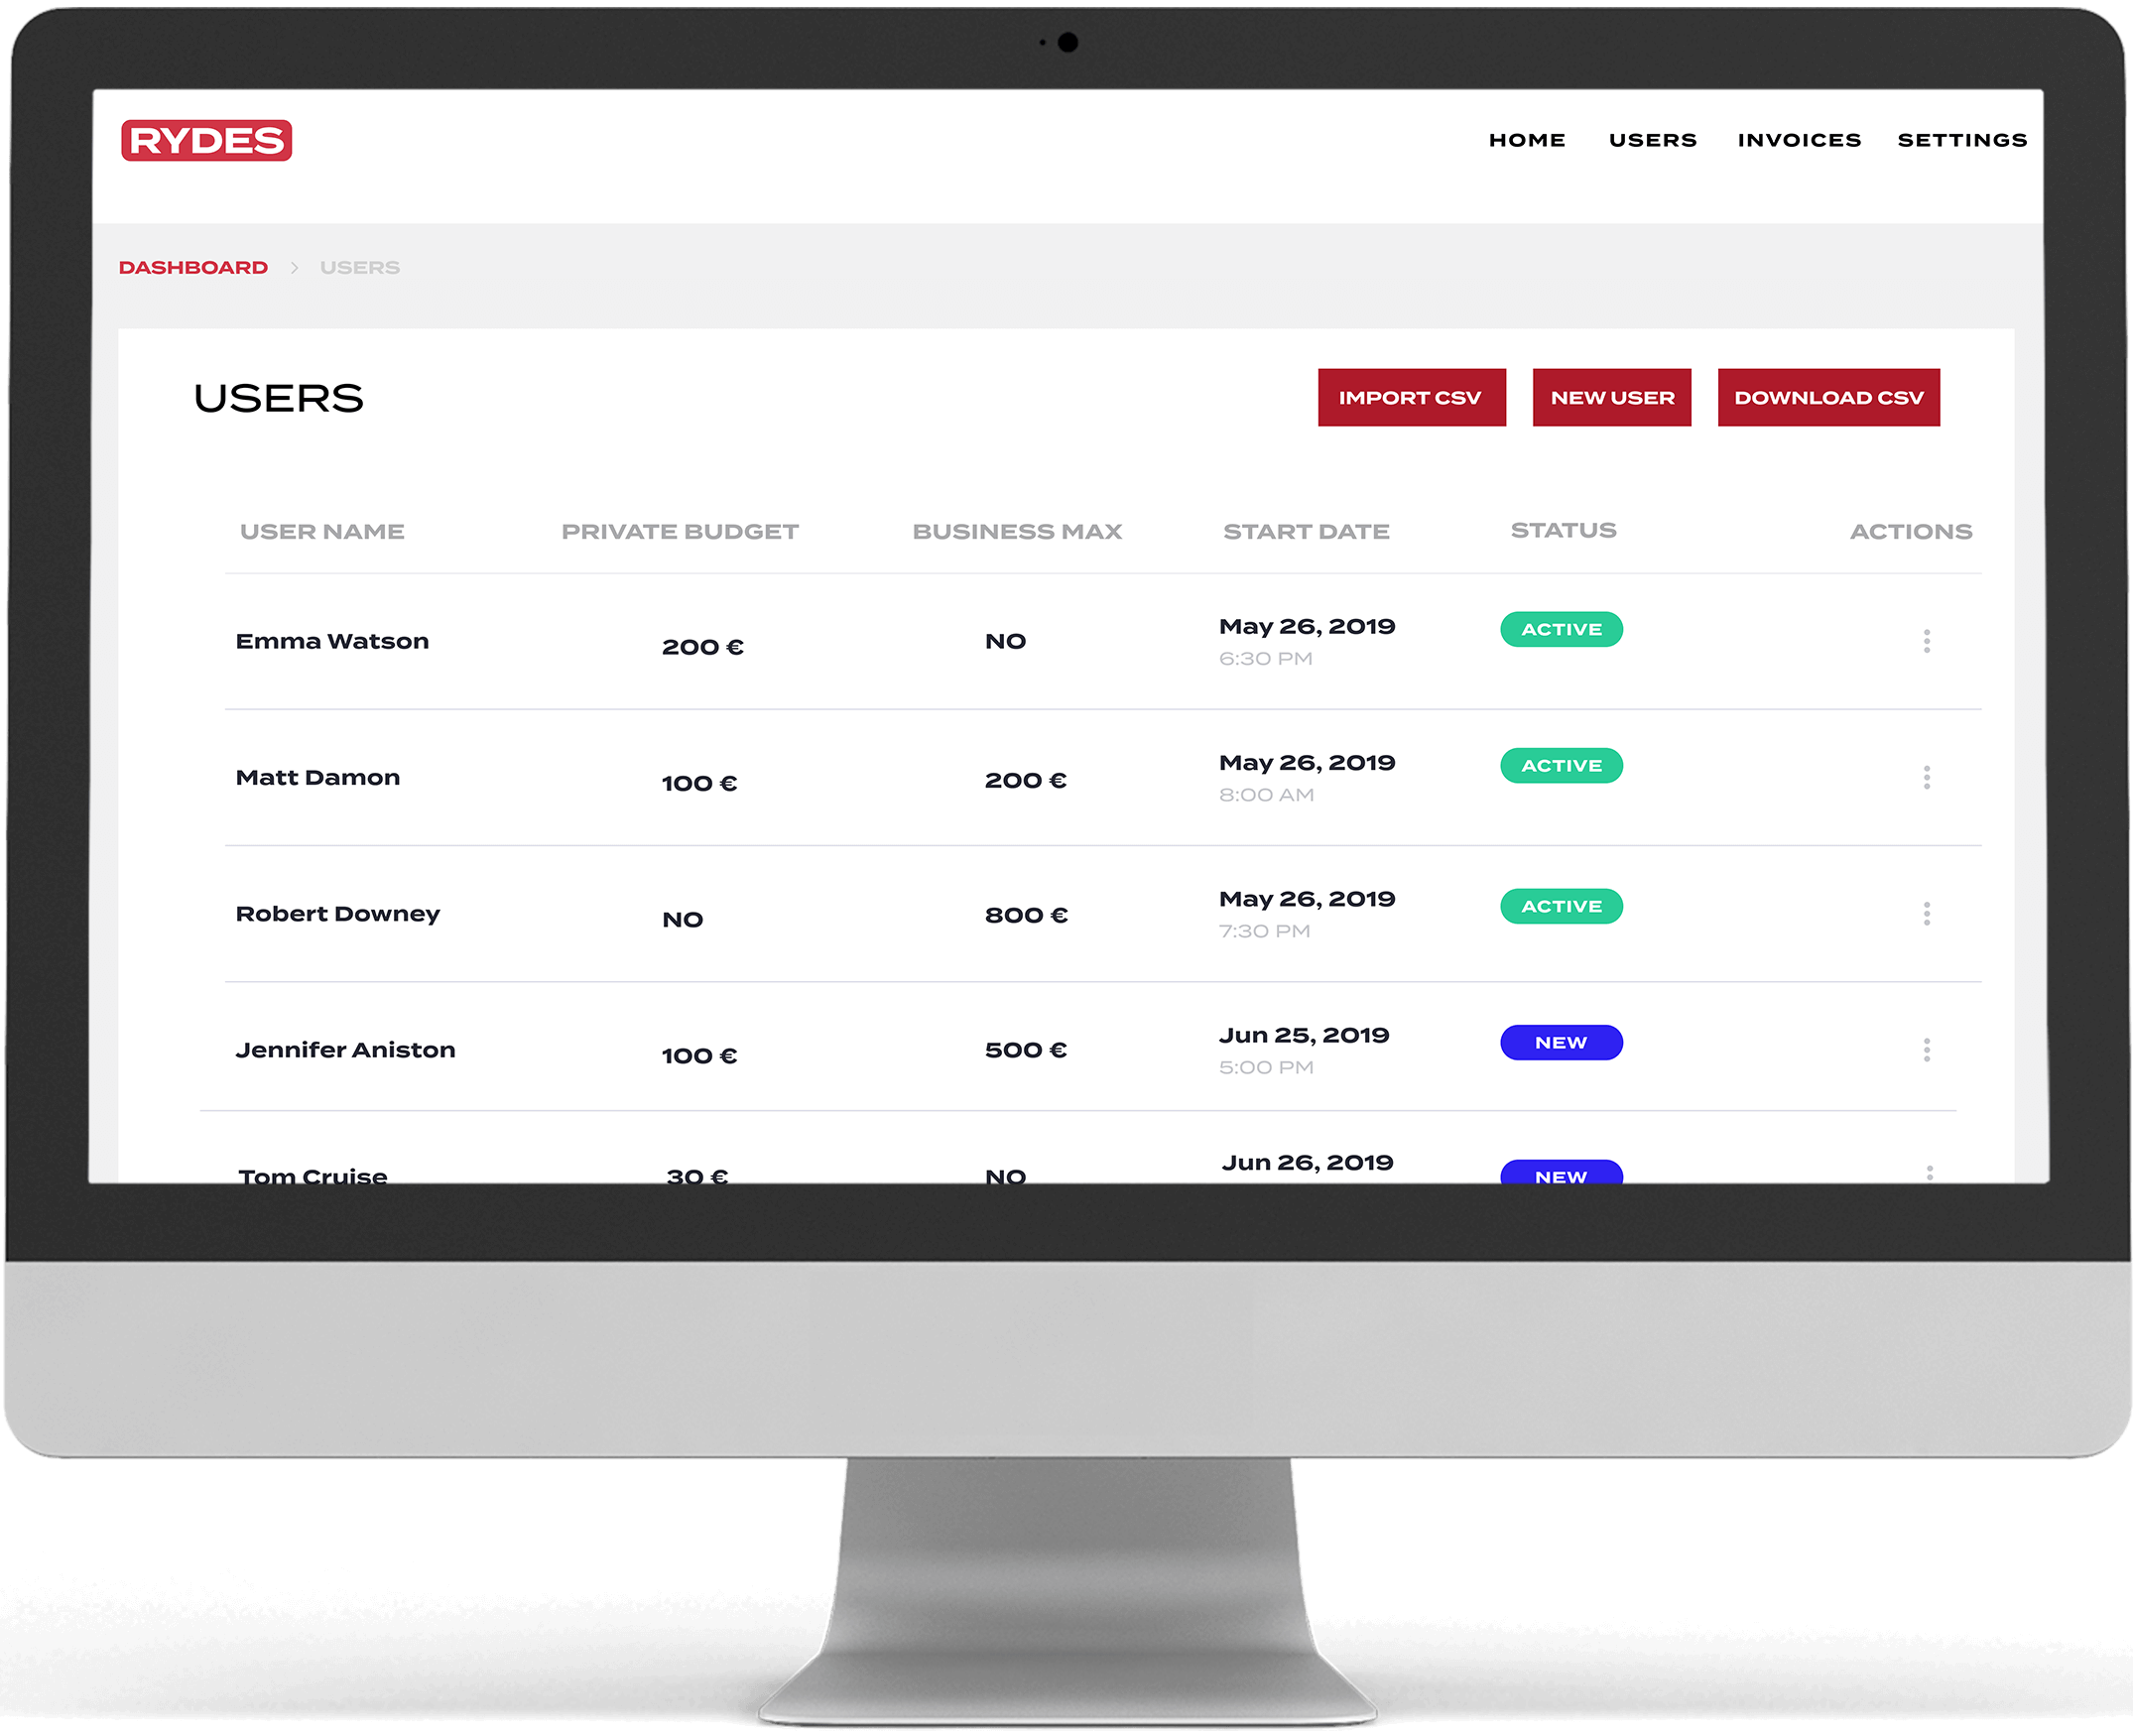 User upload screen of the RYDES Mobility Budget for HR teams